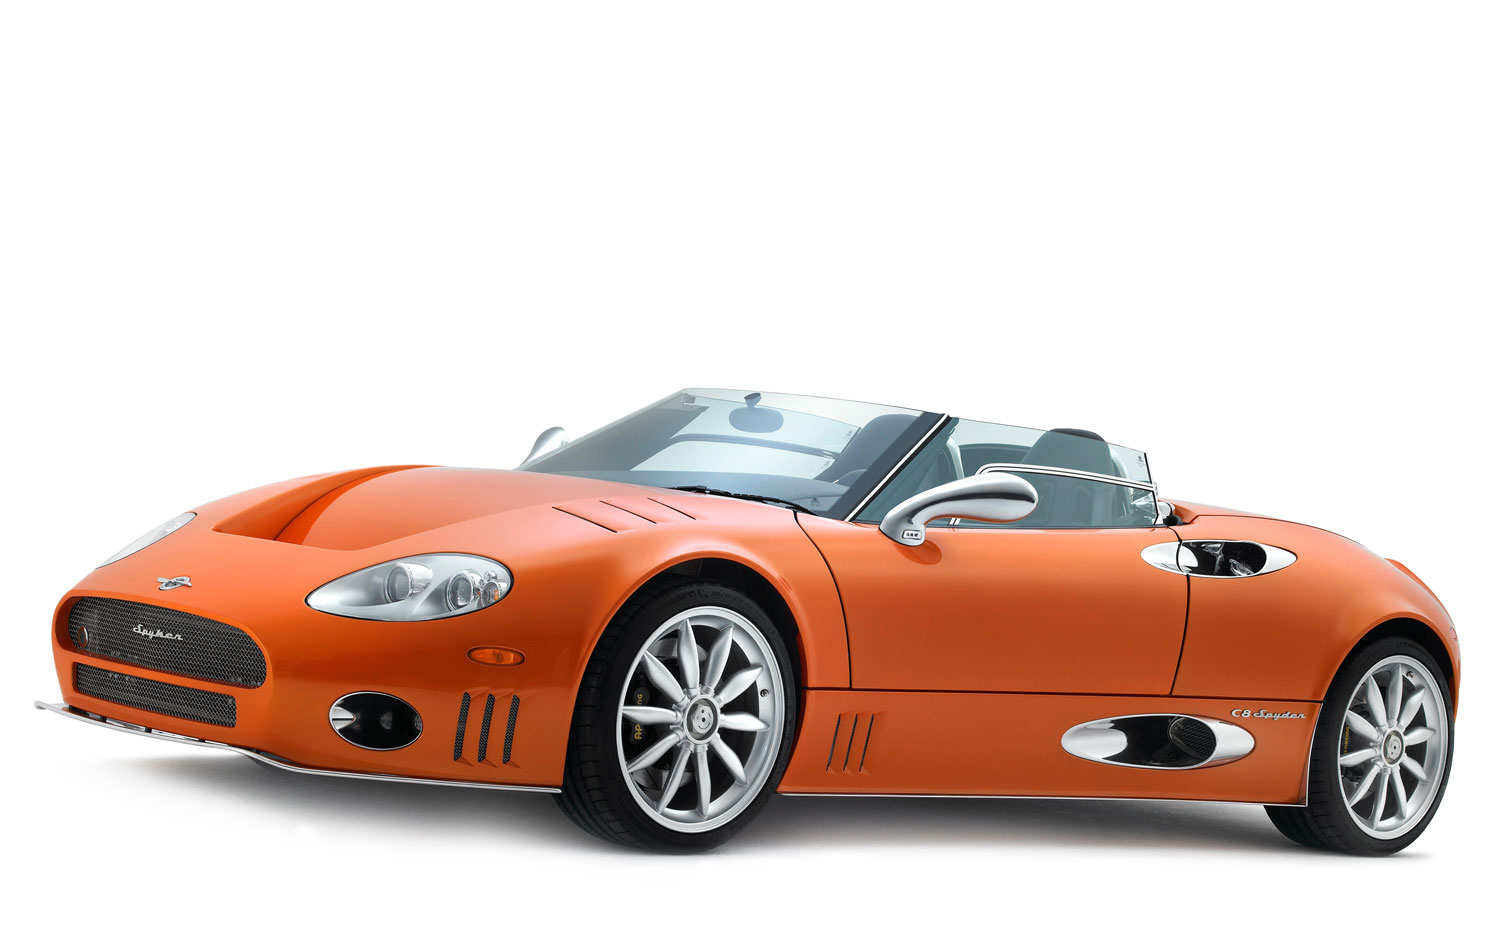 Spyker spyder photo - 10